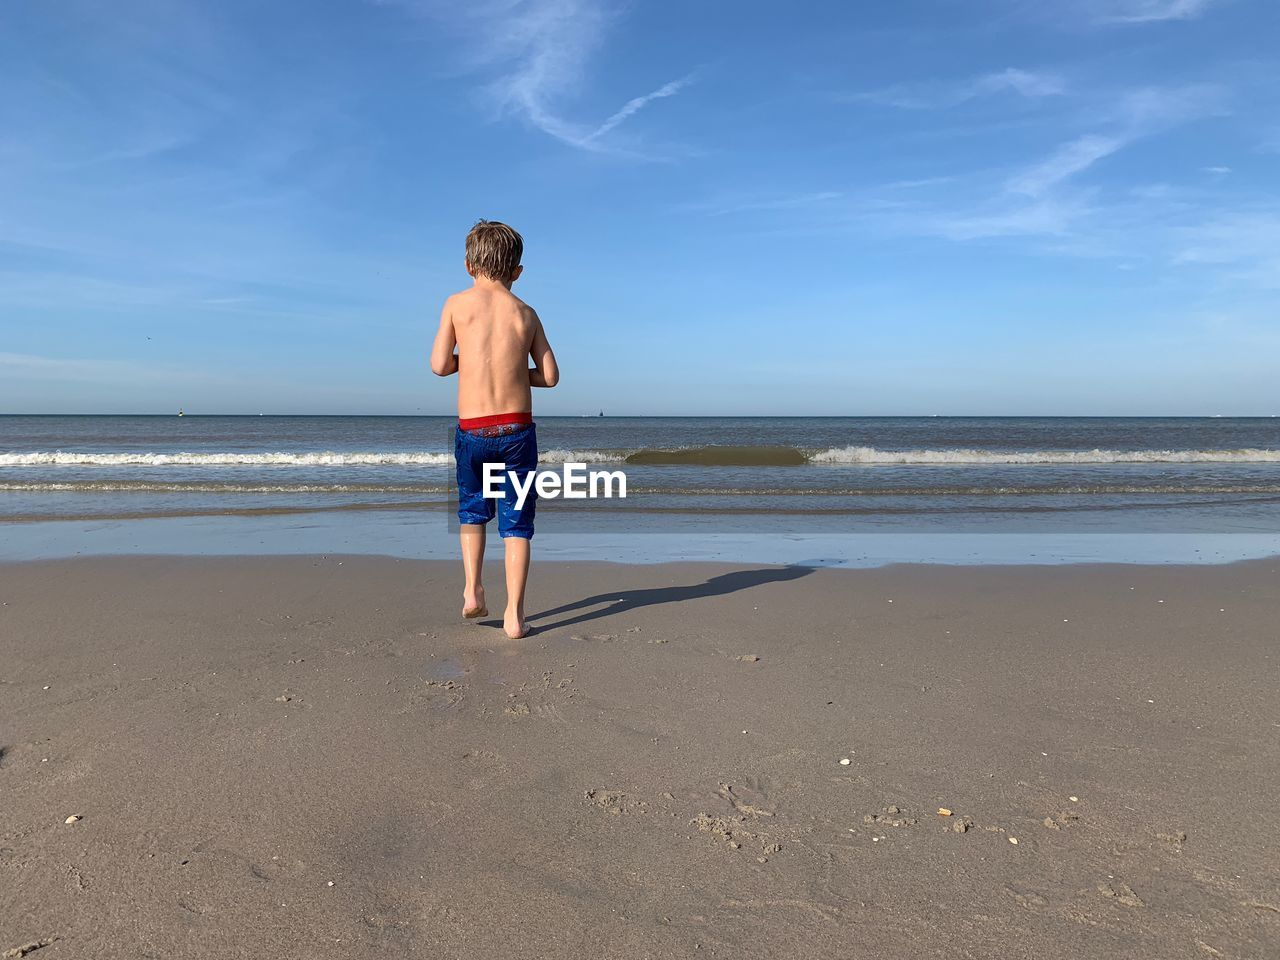 beach, land, sea, water, full length, childhood, real people, males, one person, sky, men, horizon over water, boys, child, leisure activity, rear view, horizon, sand, casual clothing, outdoors, shorts